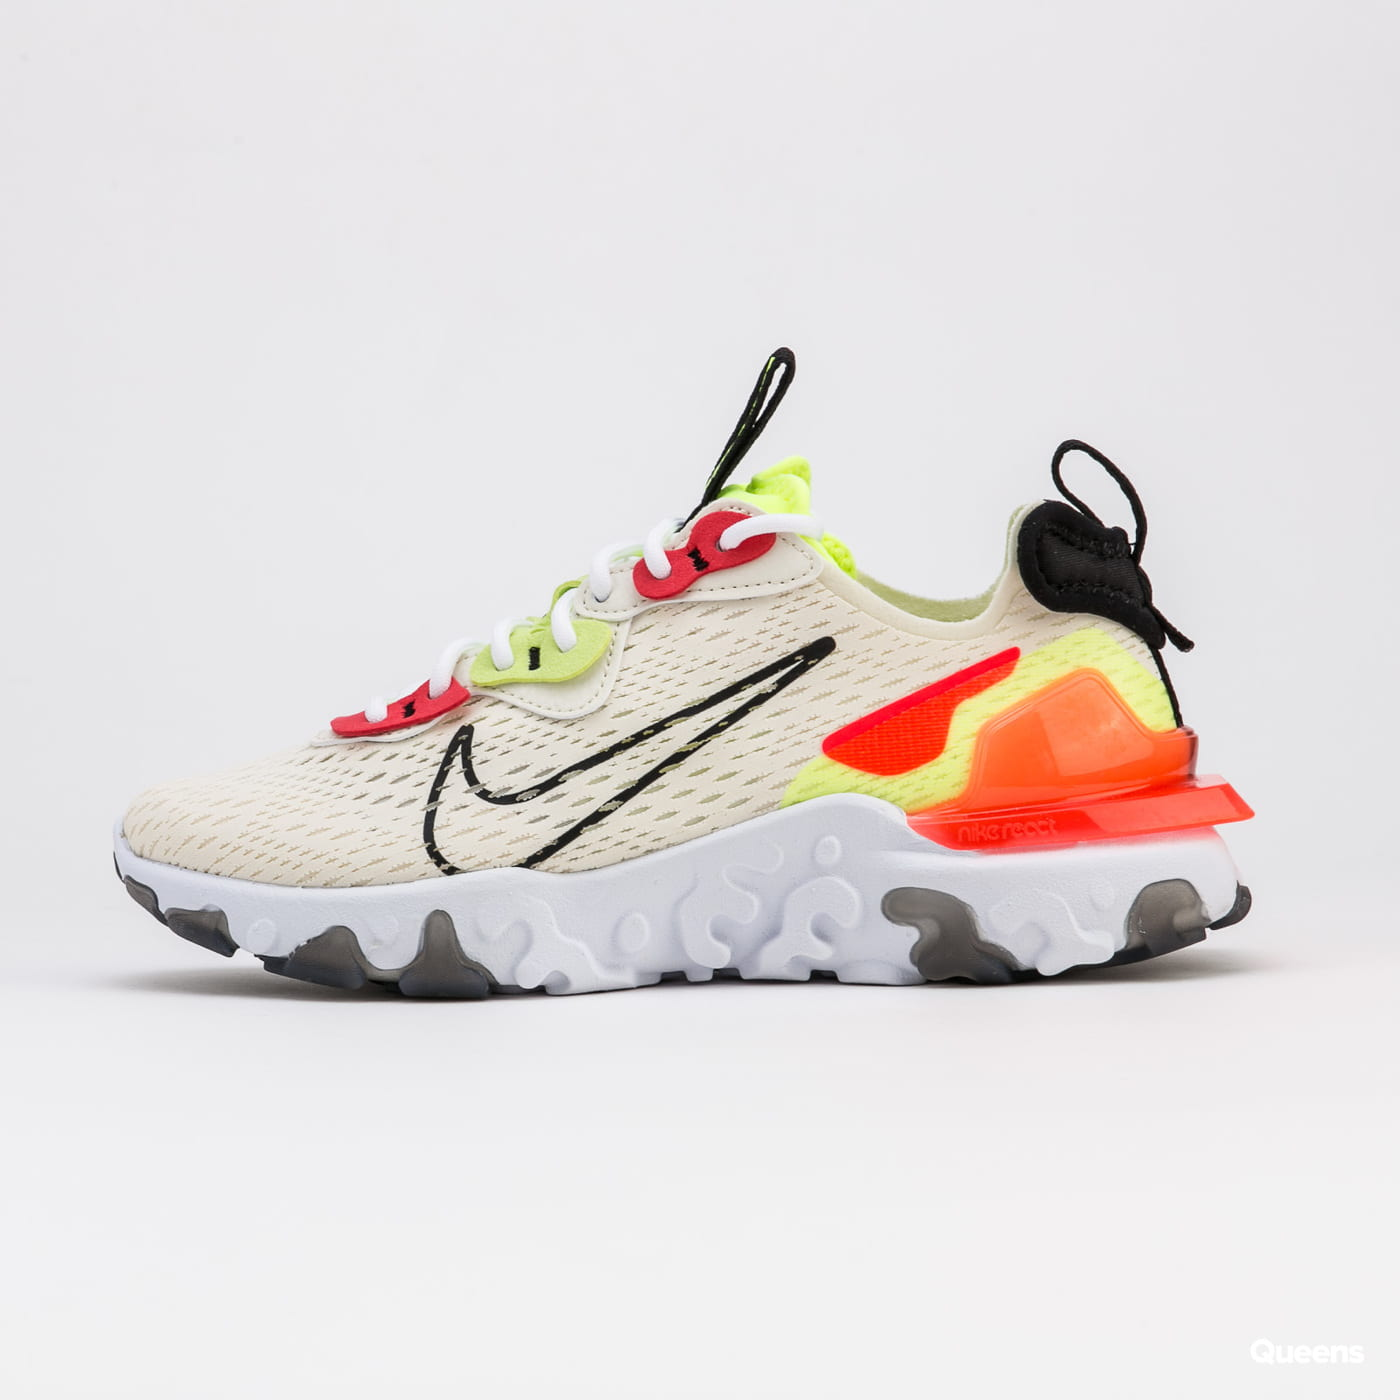 Nike W NSW React Vision pale ivory / black - volt